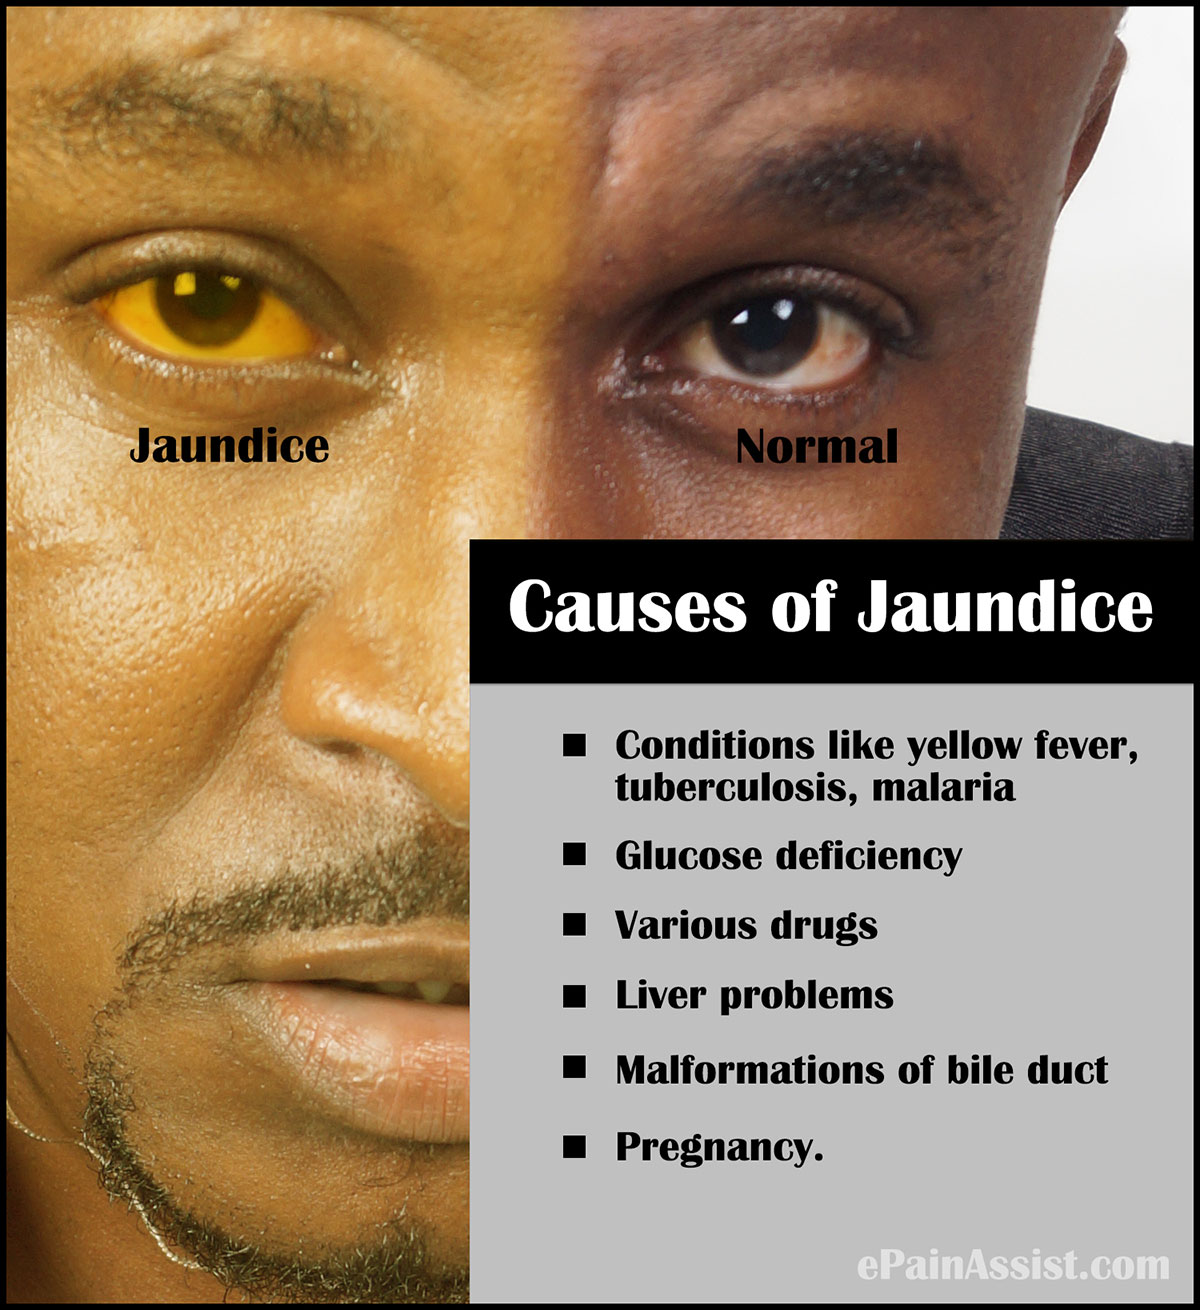 How to treat jaundice in adults